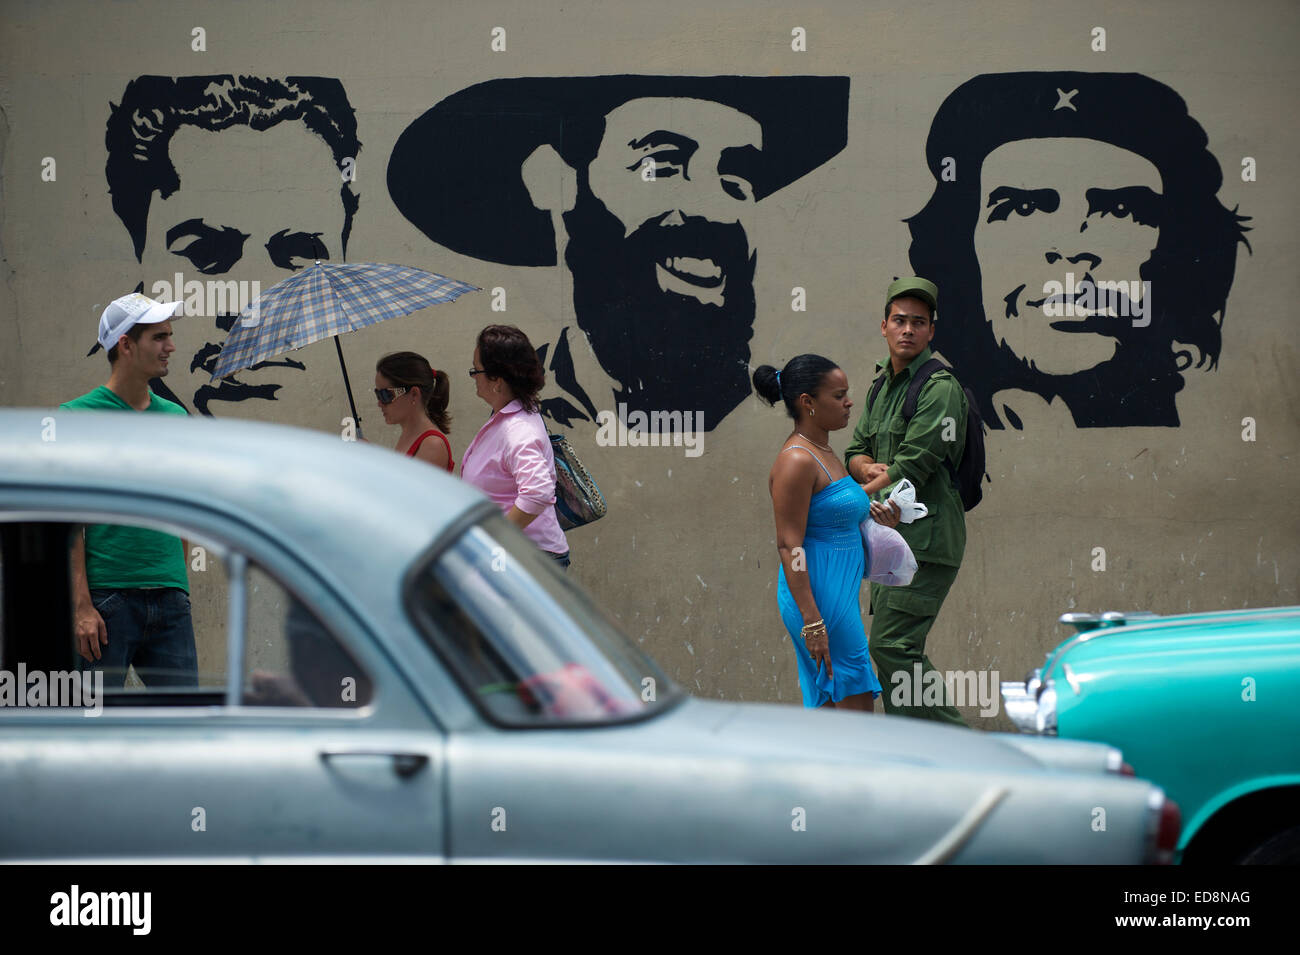 HAVANA, CUBA - JUNE, 2011: Pedestrians and classic American cars pass in front of stencil billboard of Communist - Stock Image